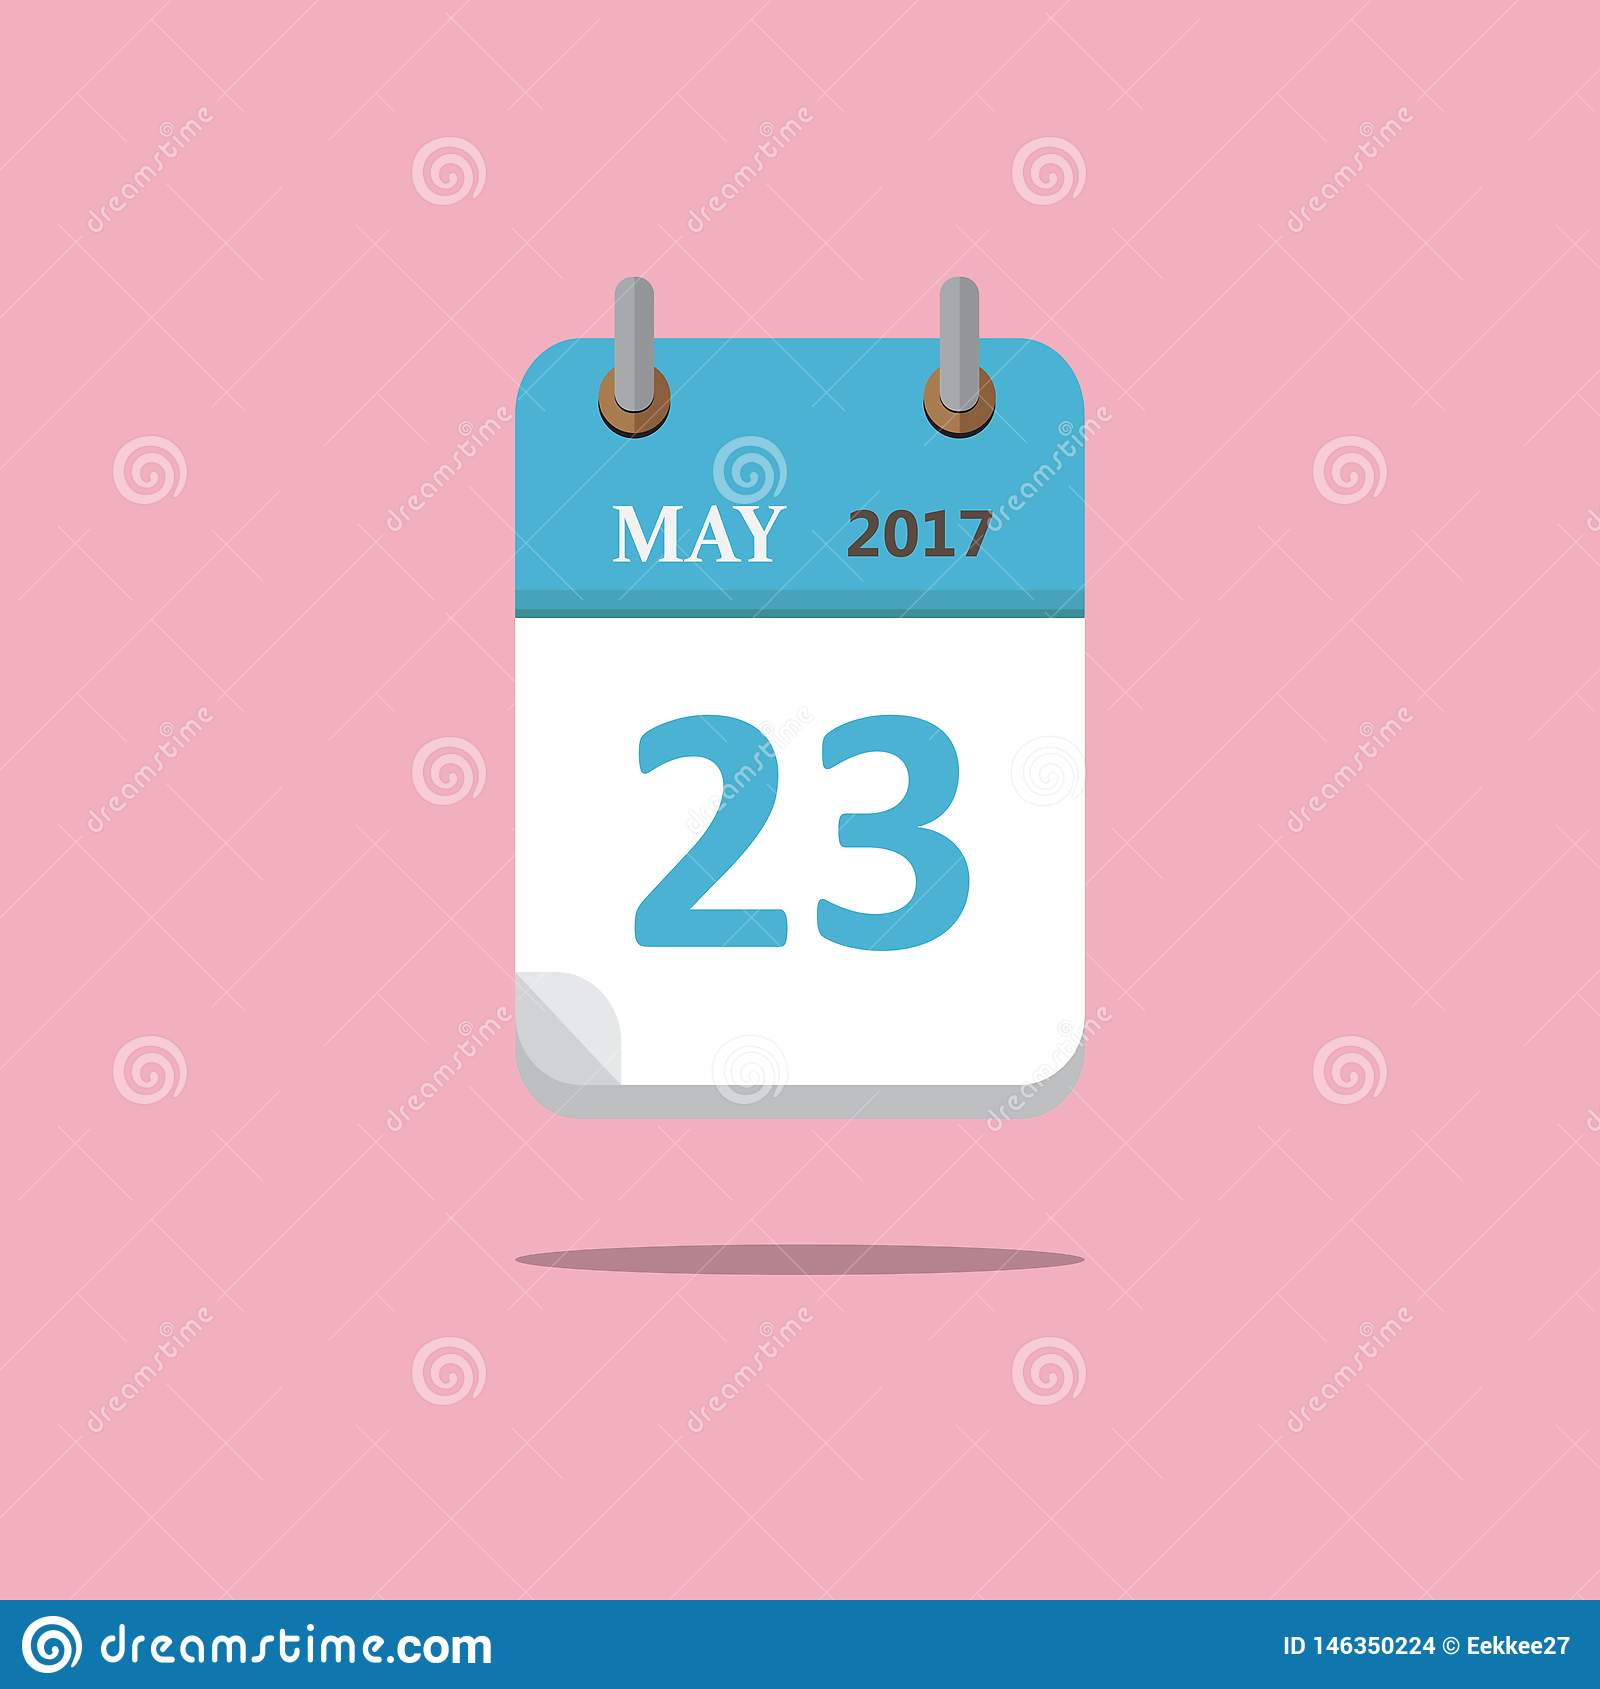 Calendar icon flat style on pink background. Vector. Illustration.